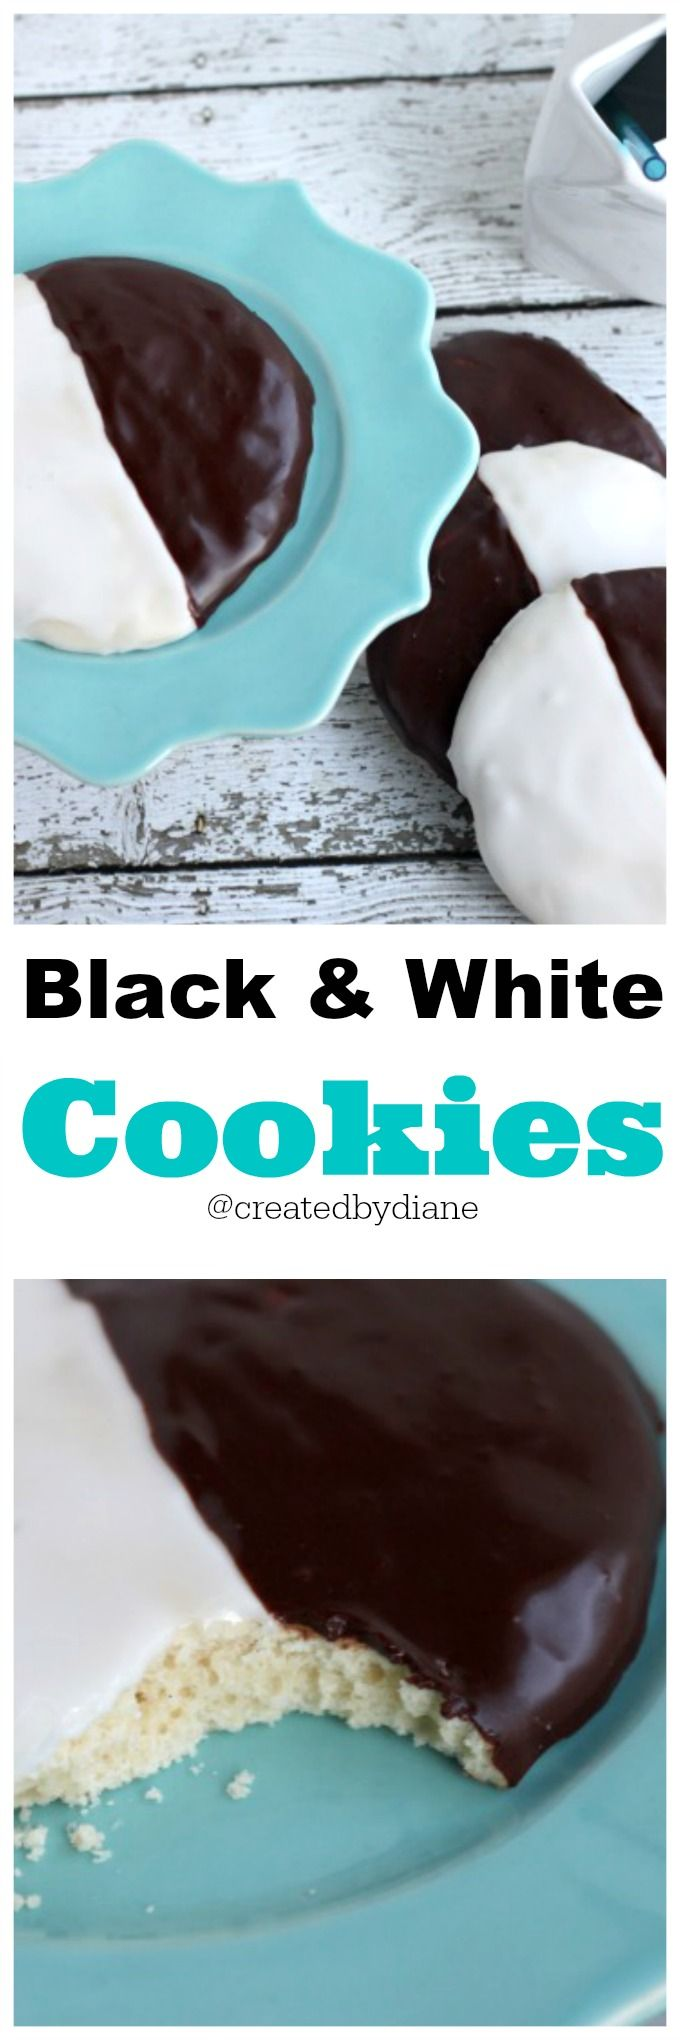 Black and White Cookies @createdbydiane